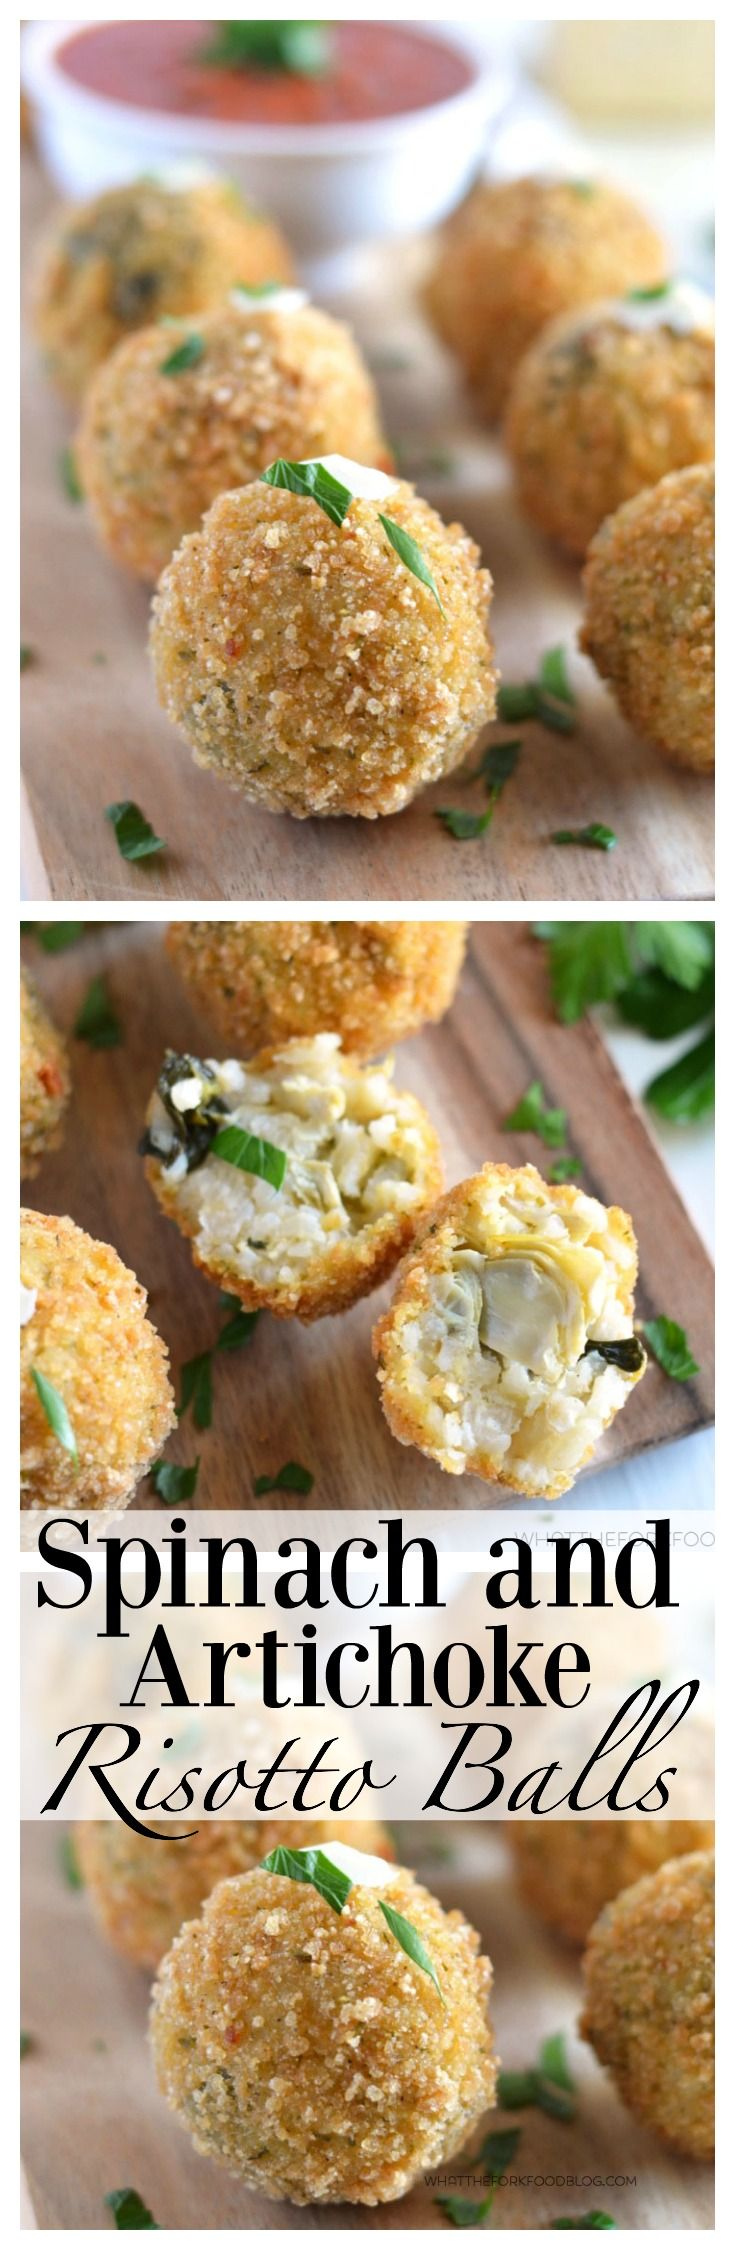 These gluten free fried spinach and artichoke risotto balls have the flavors of everyone's favorite dish, just in a fun fried form! These are the perfect appetizer or starter for any party. Today's post is sponsored by Colavita. As always, thank you for supporting brands that support What The Fork Food Blog ♥ The holidays...Read More »